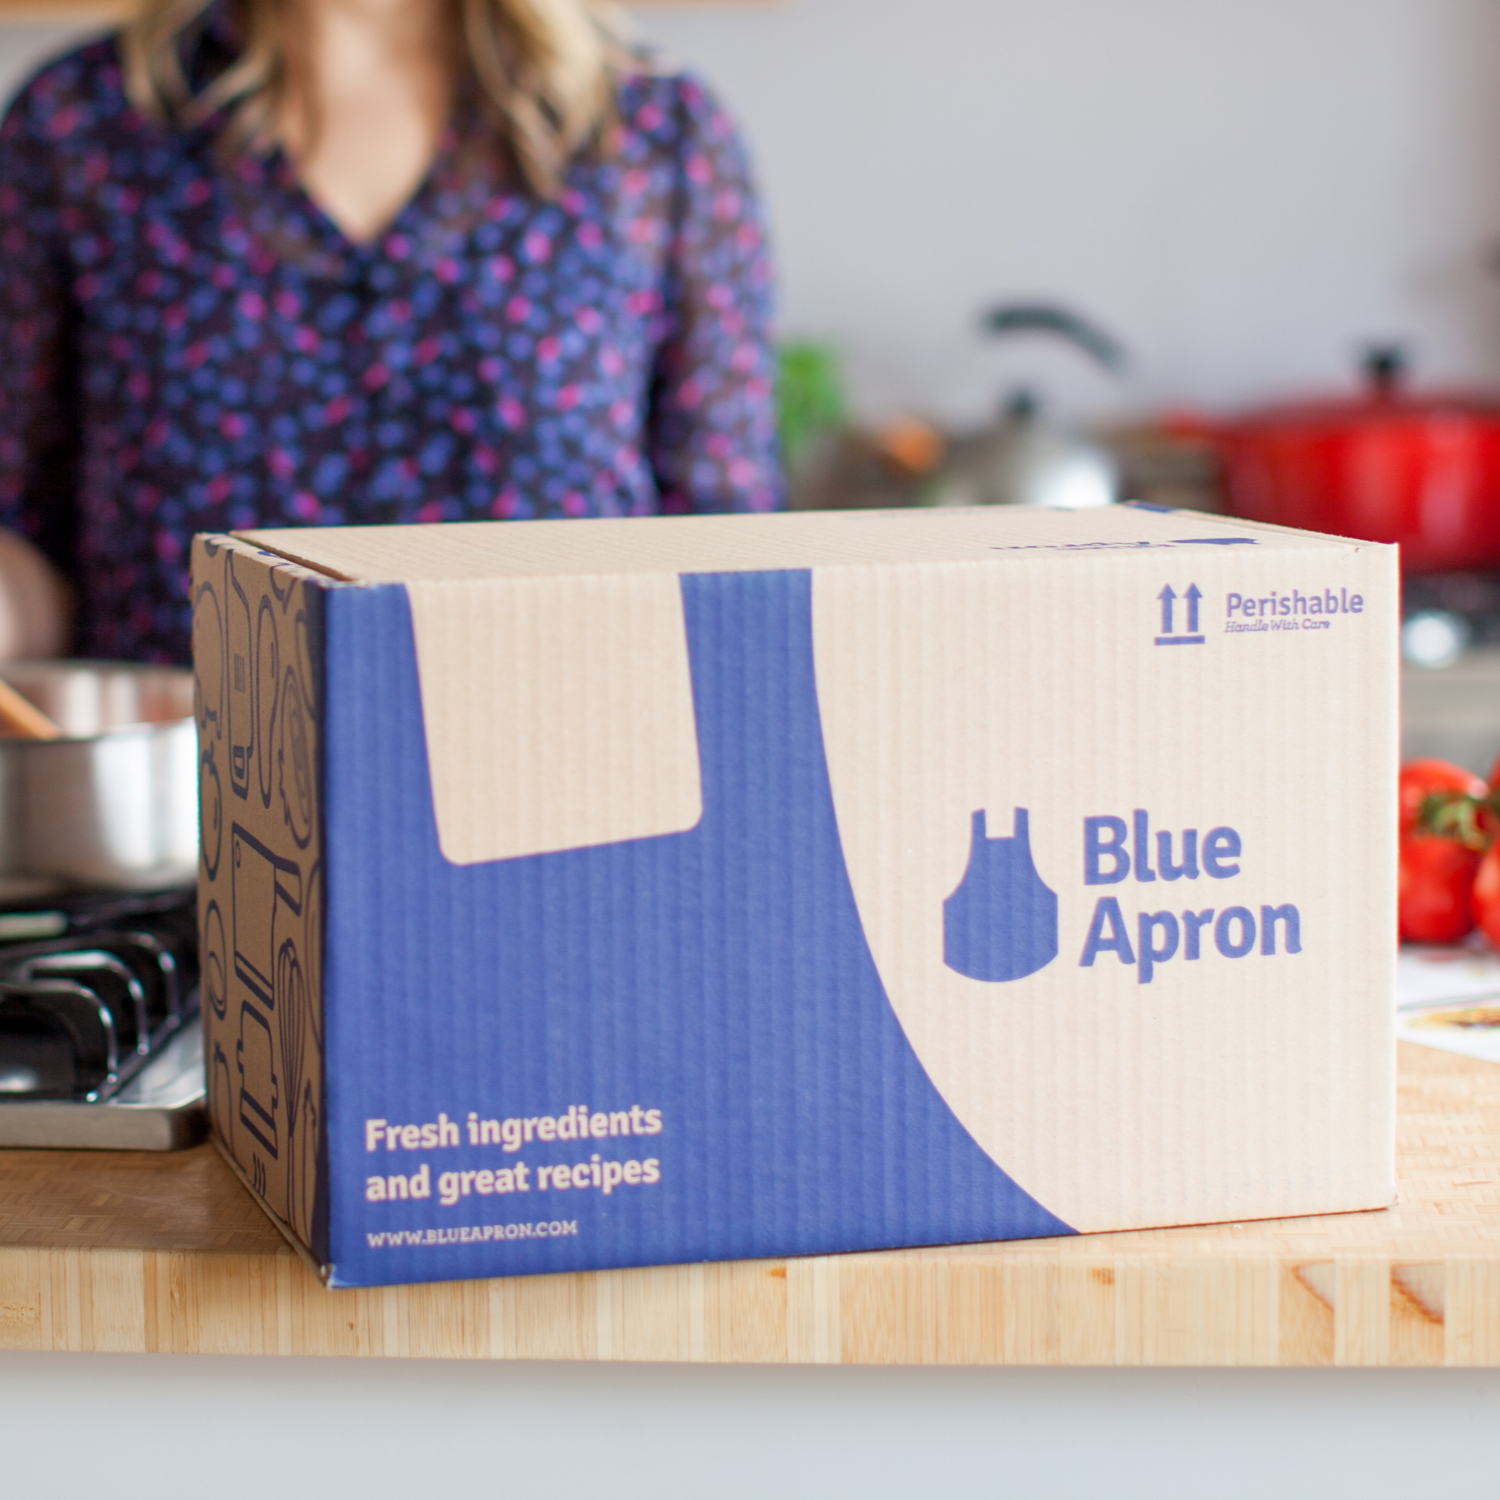 Blue Apron iPhone app